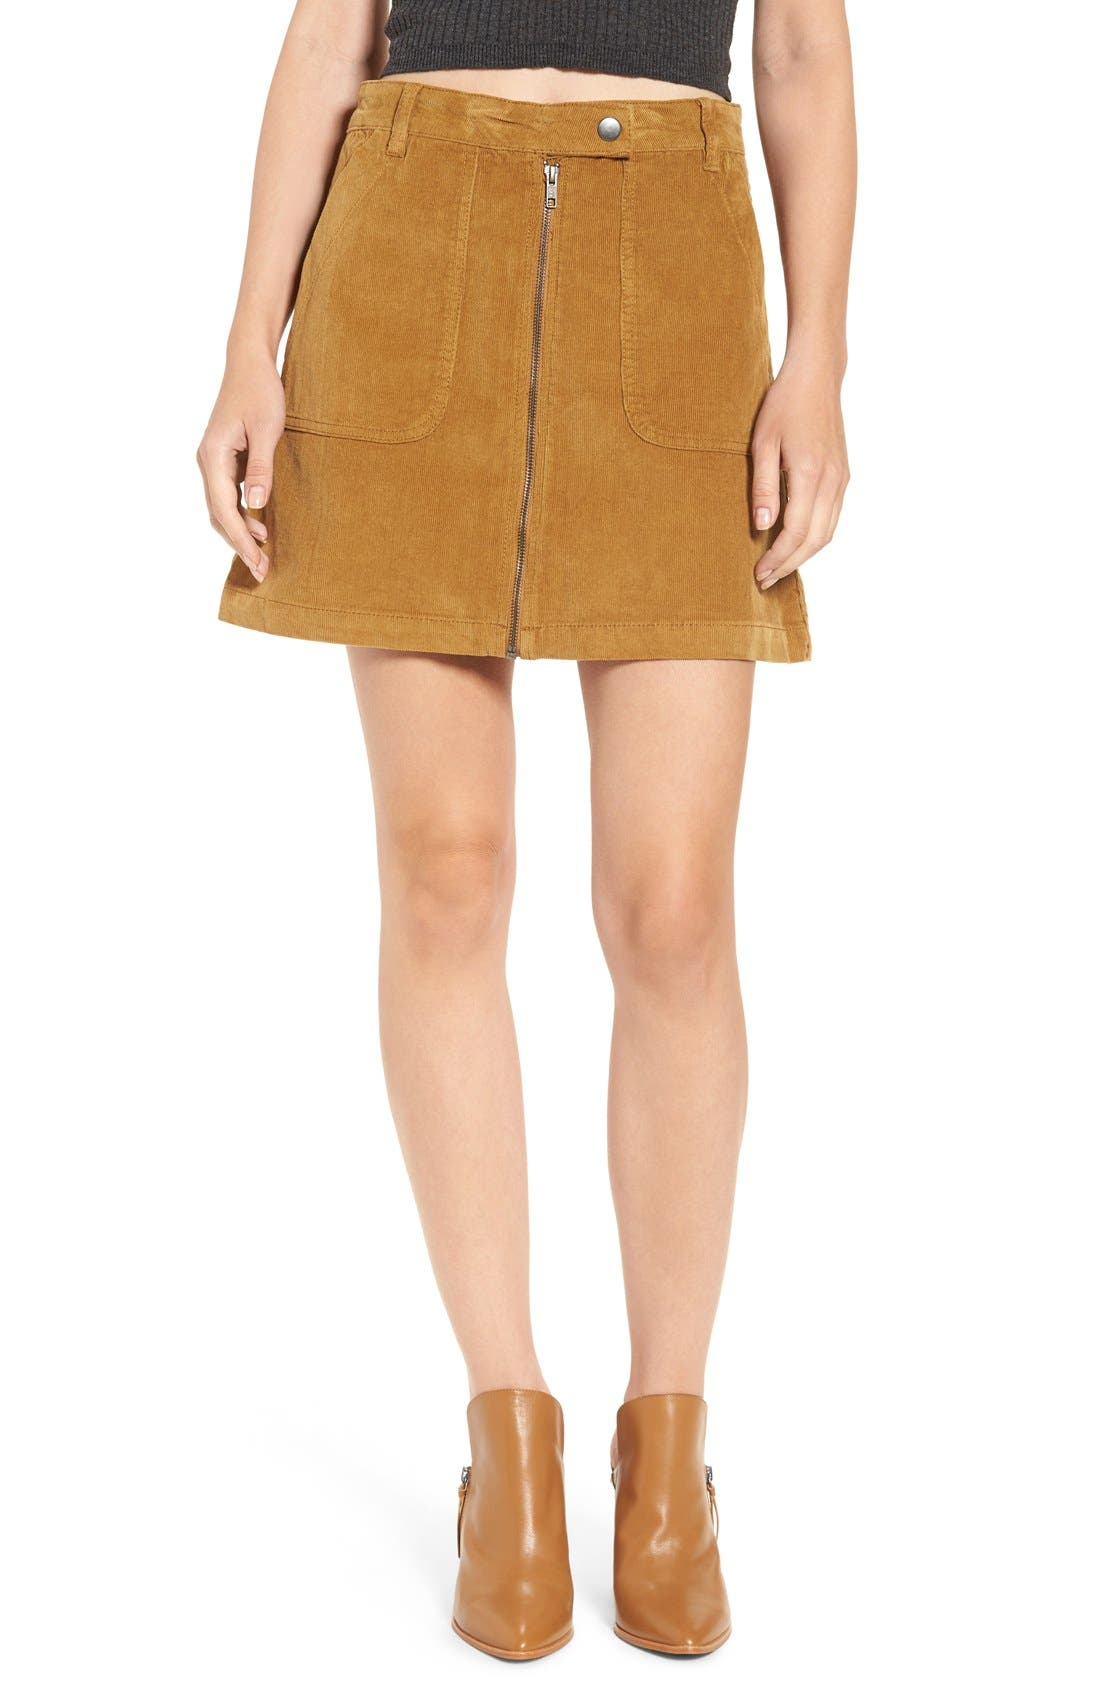 Alternate Image 1 Selected - BP. A-Line Corduroy Skirt